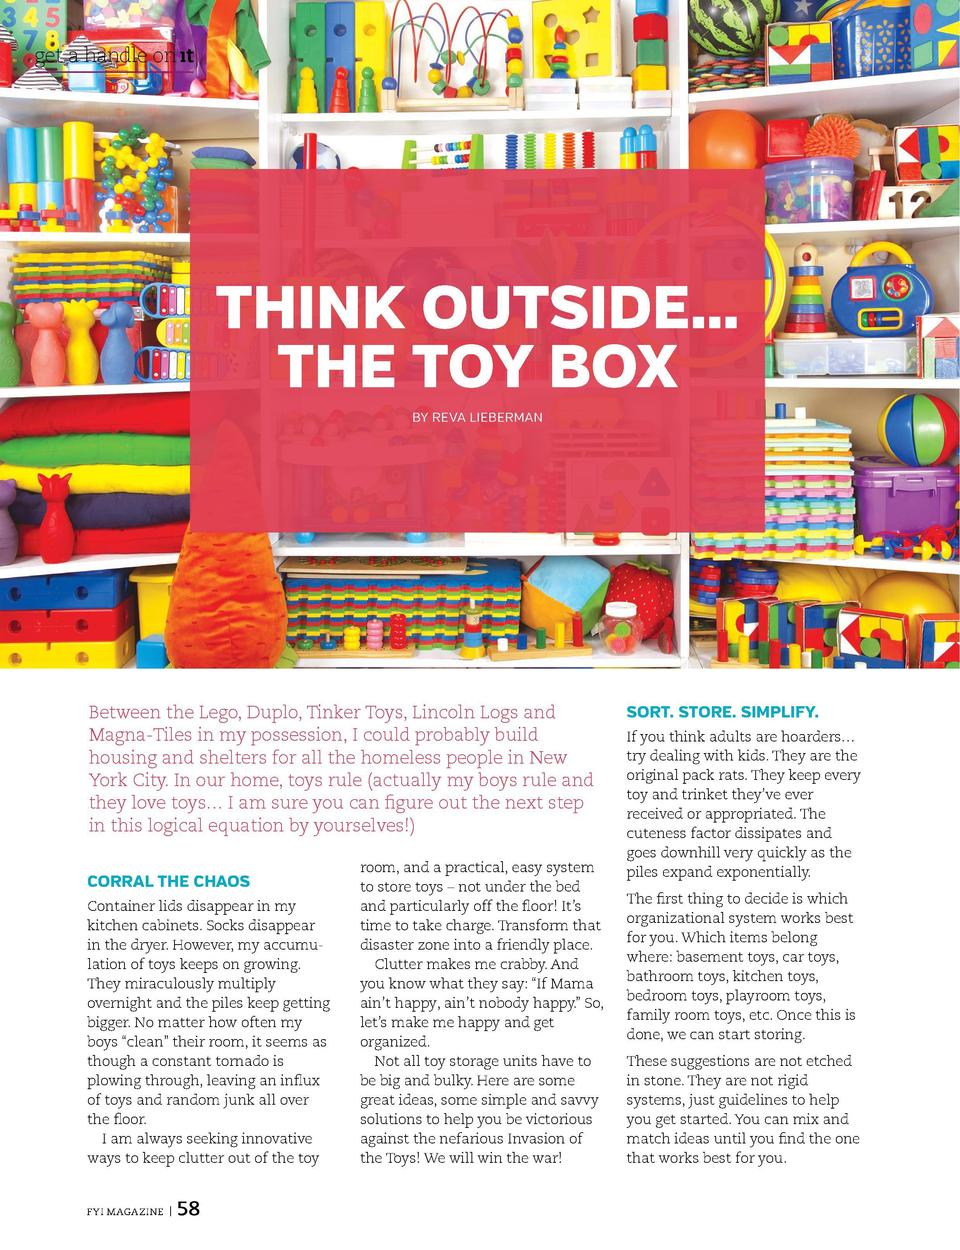 get a handle on   t  get a handle on   t BOOK    EM  THINK OUTSIDE    THE TOY BOX BY REVA LIEBERMAN  CUT THE CLUTTER  Shel...